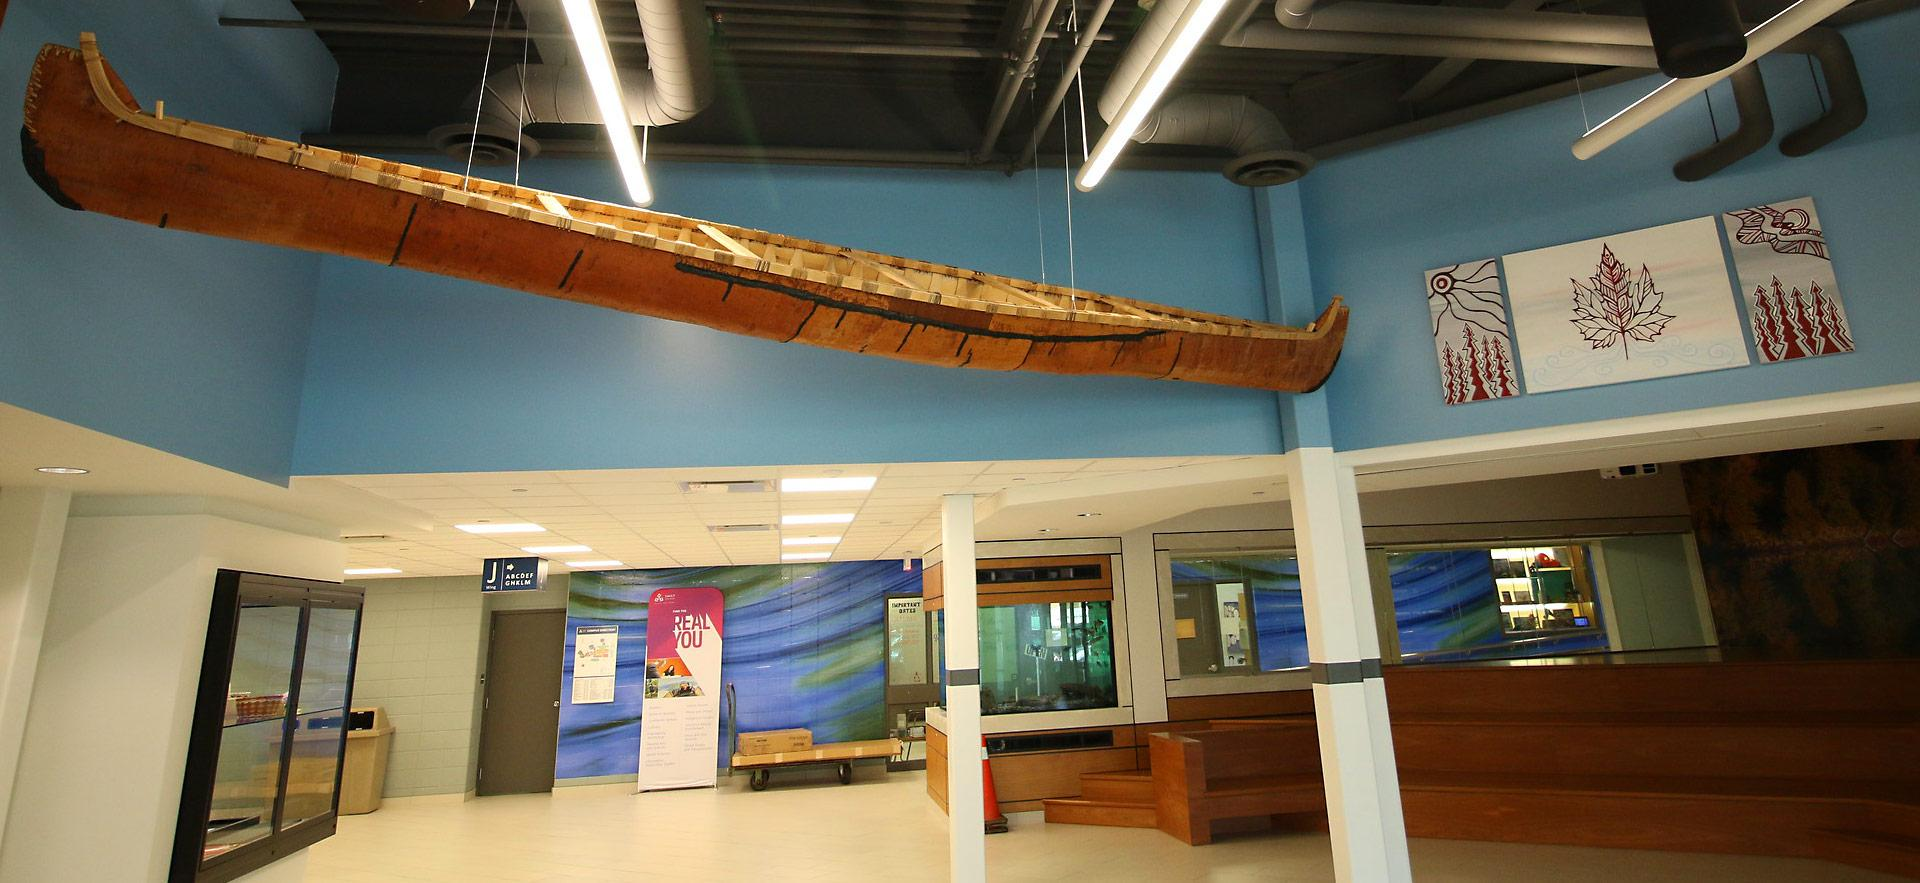 indigenous crafted canoe suspended in hall entry